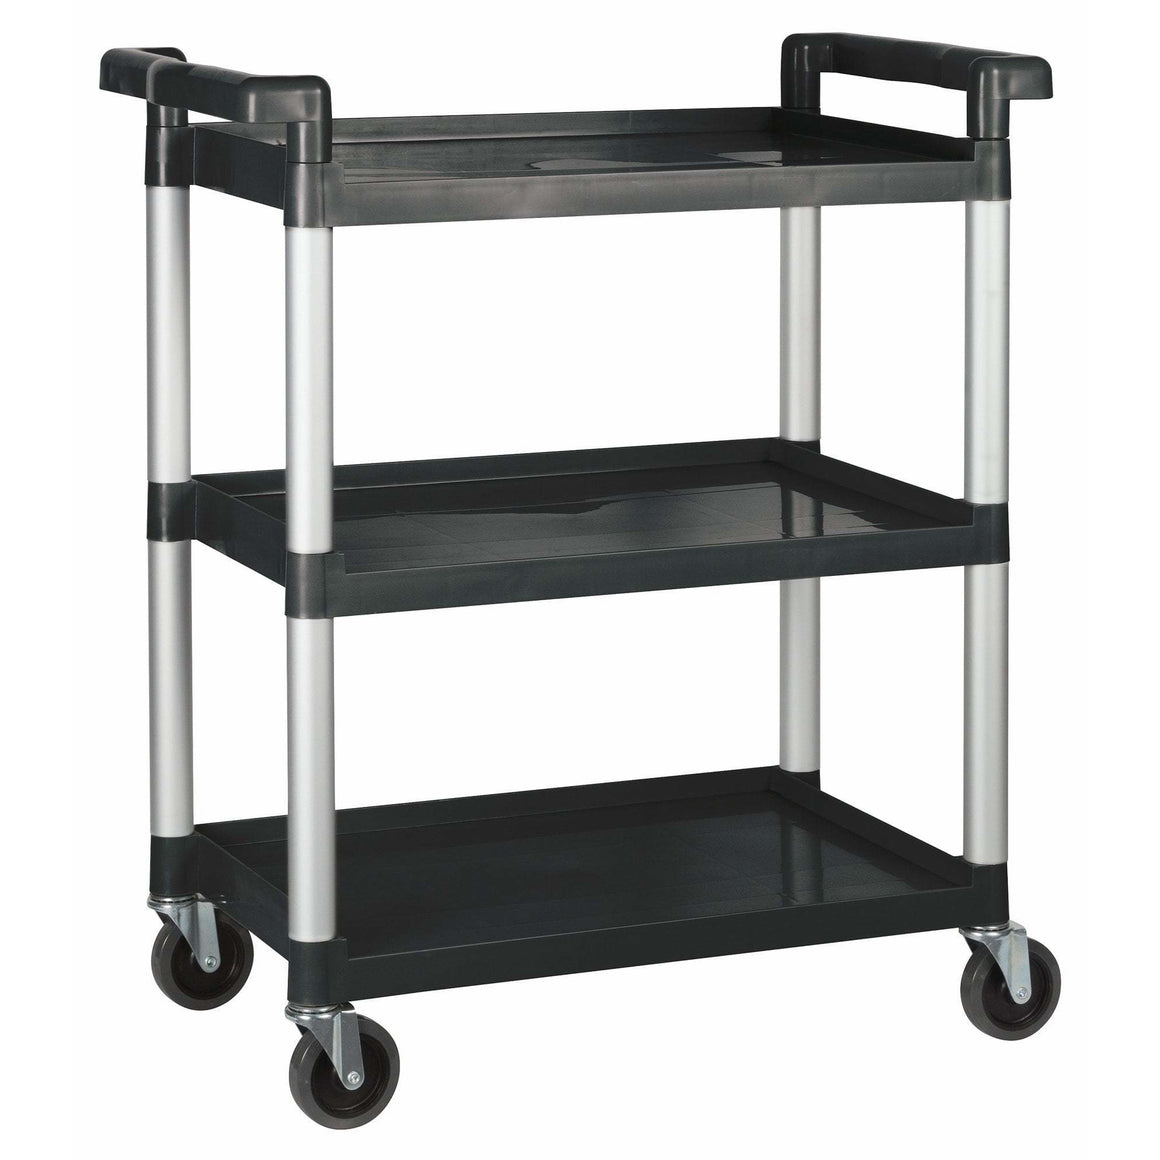 "Winco - UC-2415K - Plastic Utility Cart, 32""L x 16-1/8""W x 36-3/4""H, 3 Tier, Black - Bussing - Maltese & Co New and Used  restaurant Equipment"